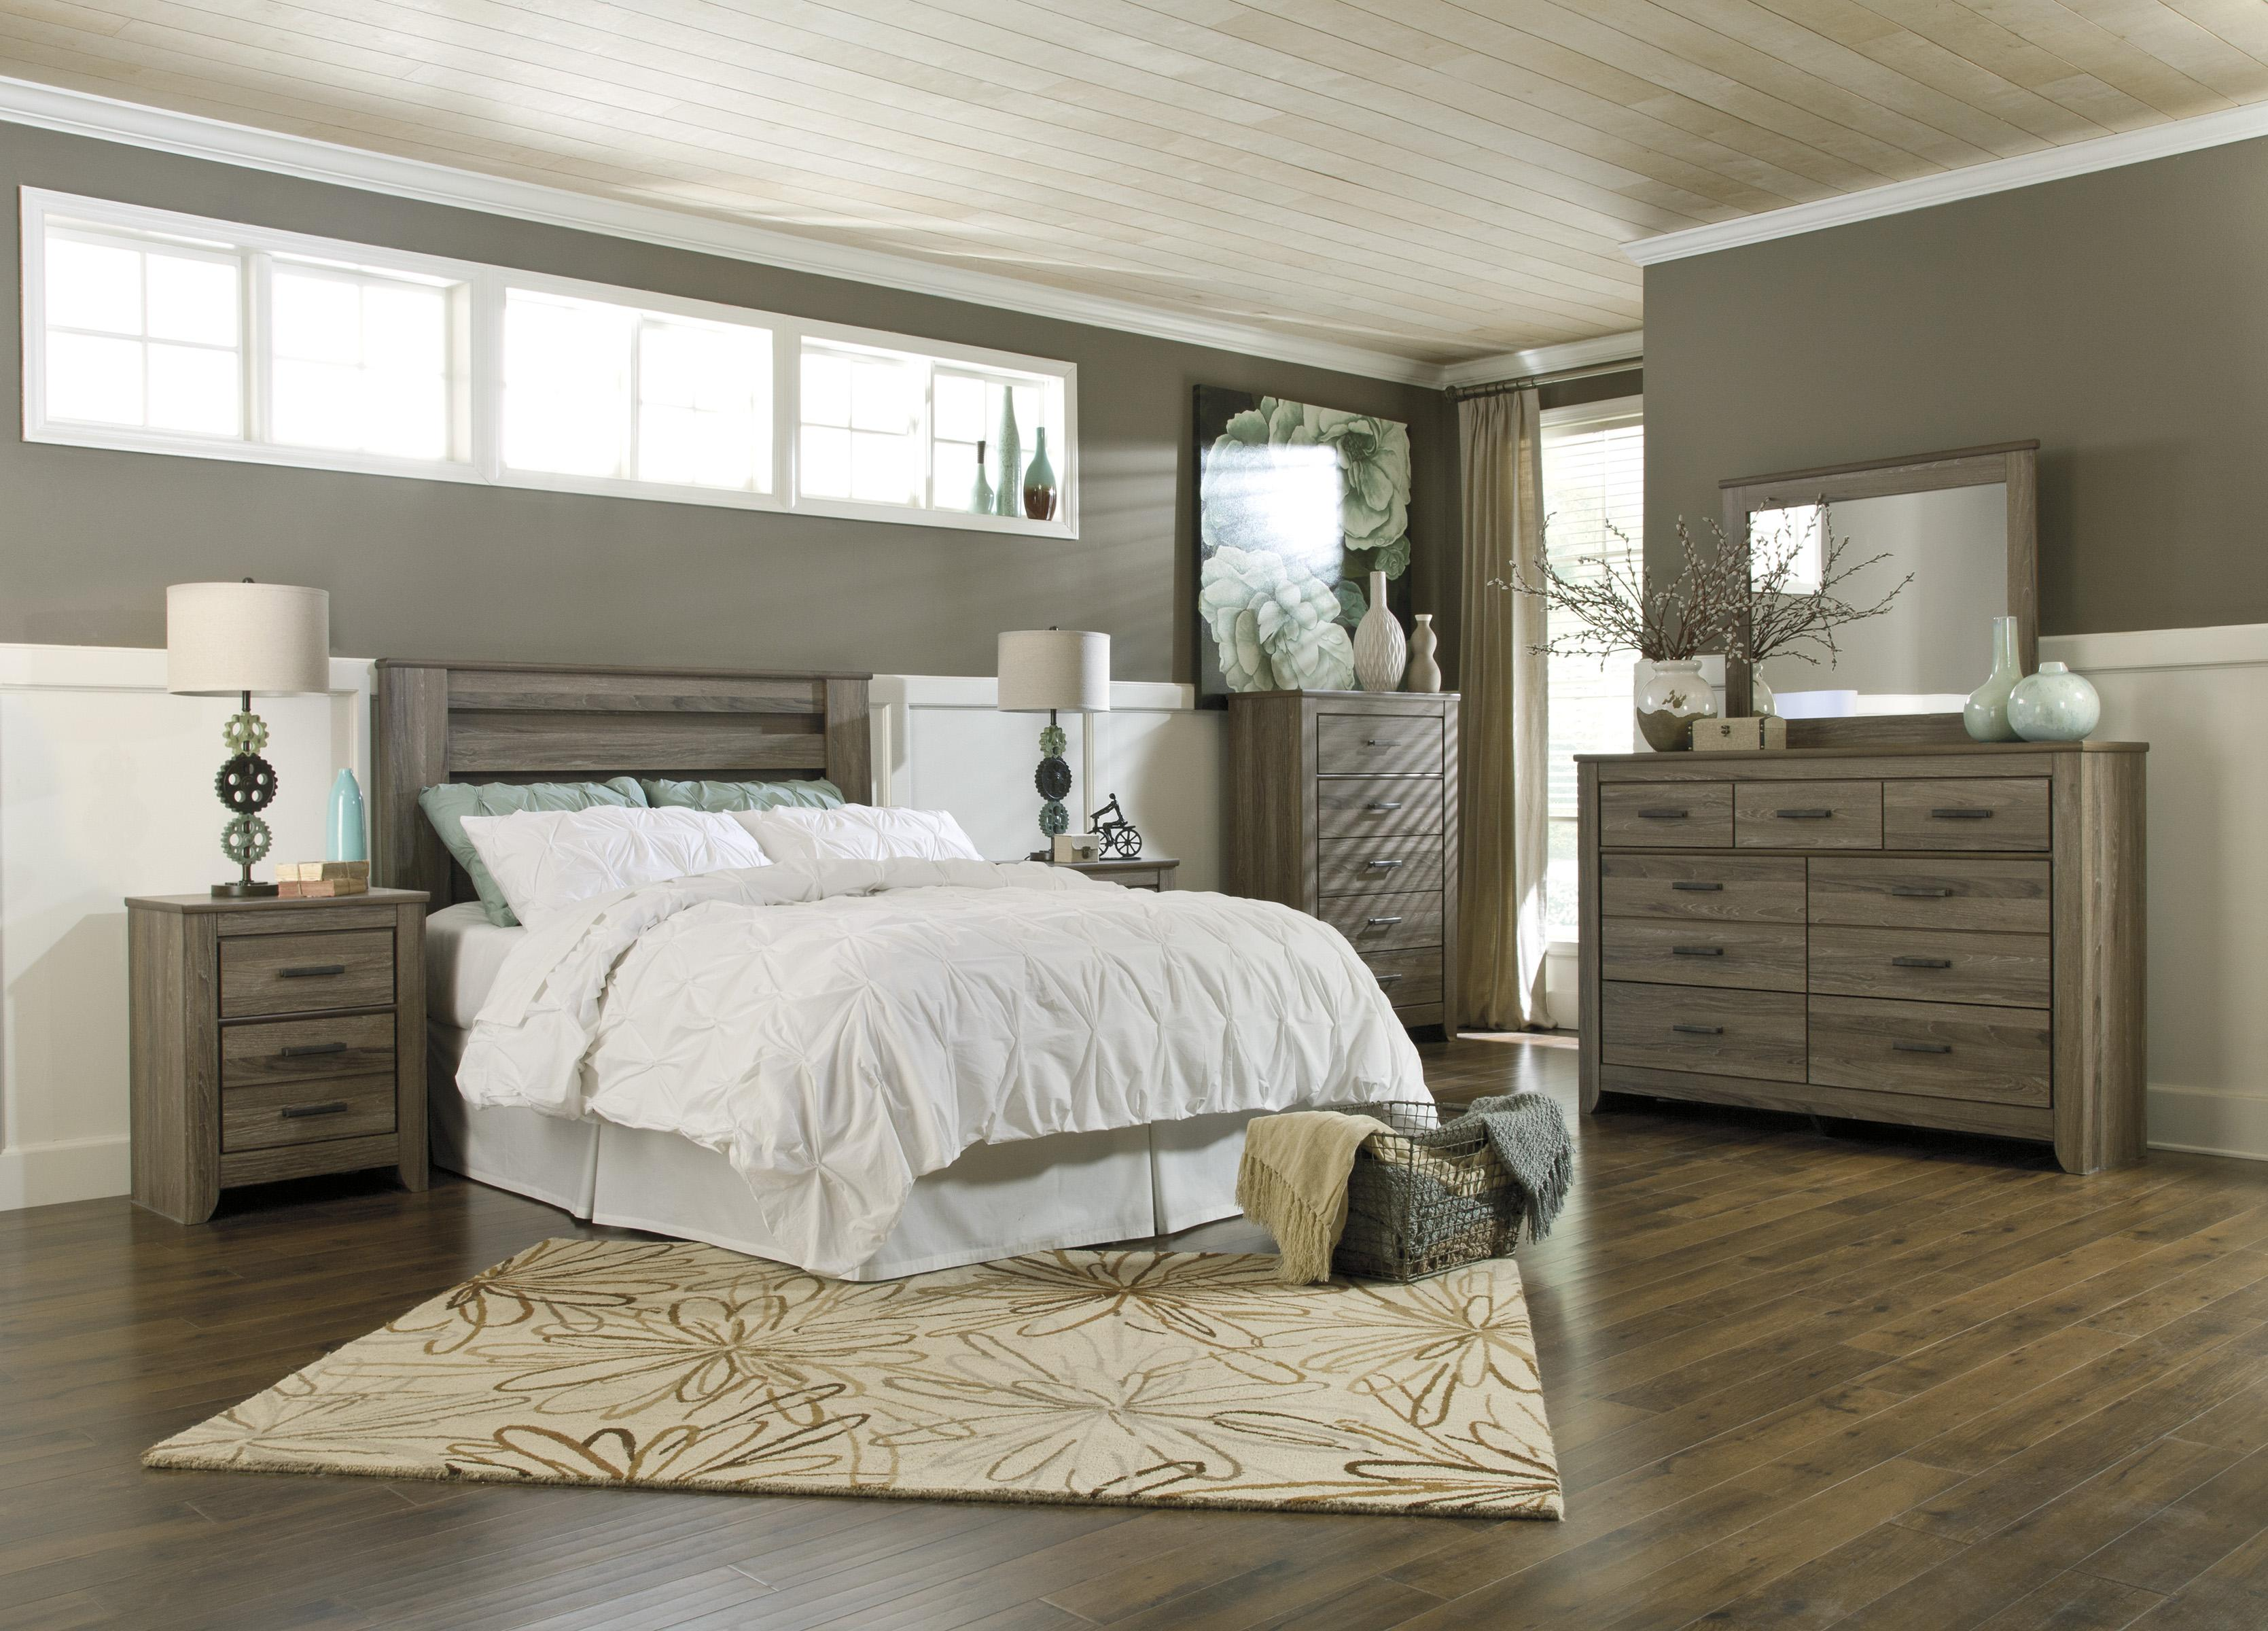 signature by chest dresser b with traditional gabriela item bedroom number products ashley design mirror drawer